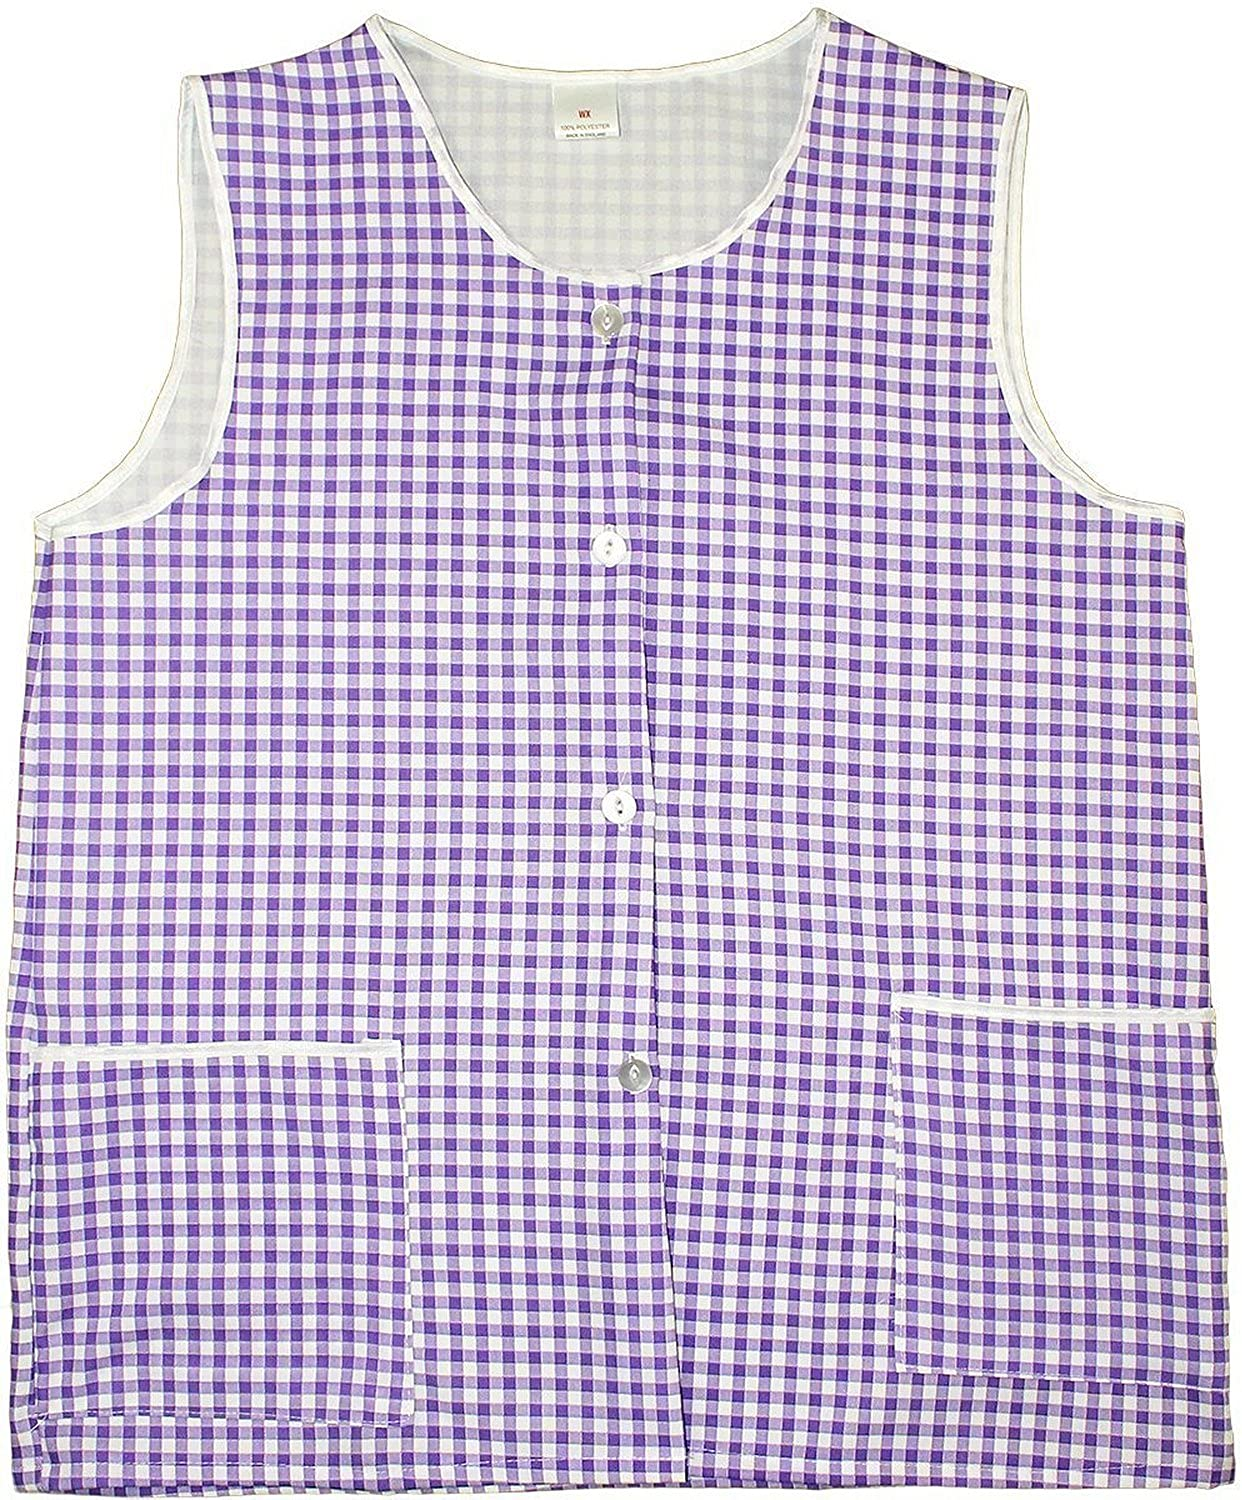 White tabard apron - Hduk Top Quality Ladies Gingham Check Home Work Tabard Apron With Two Front Pockets And Front Button Fastening Available In 6 Colours And Uk Sizes 8 10